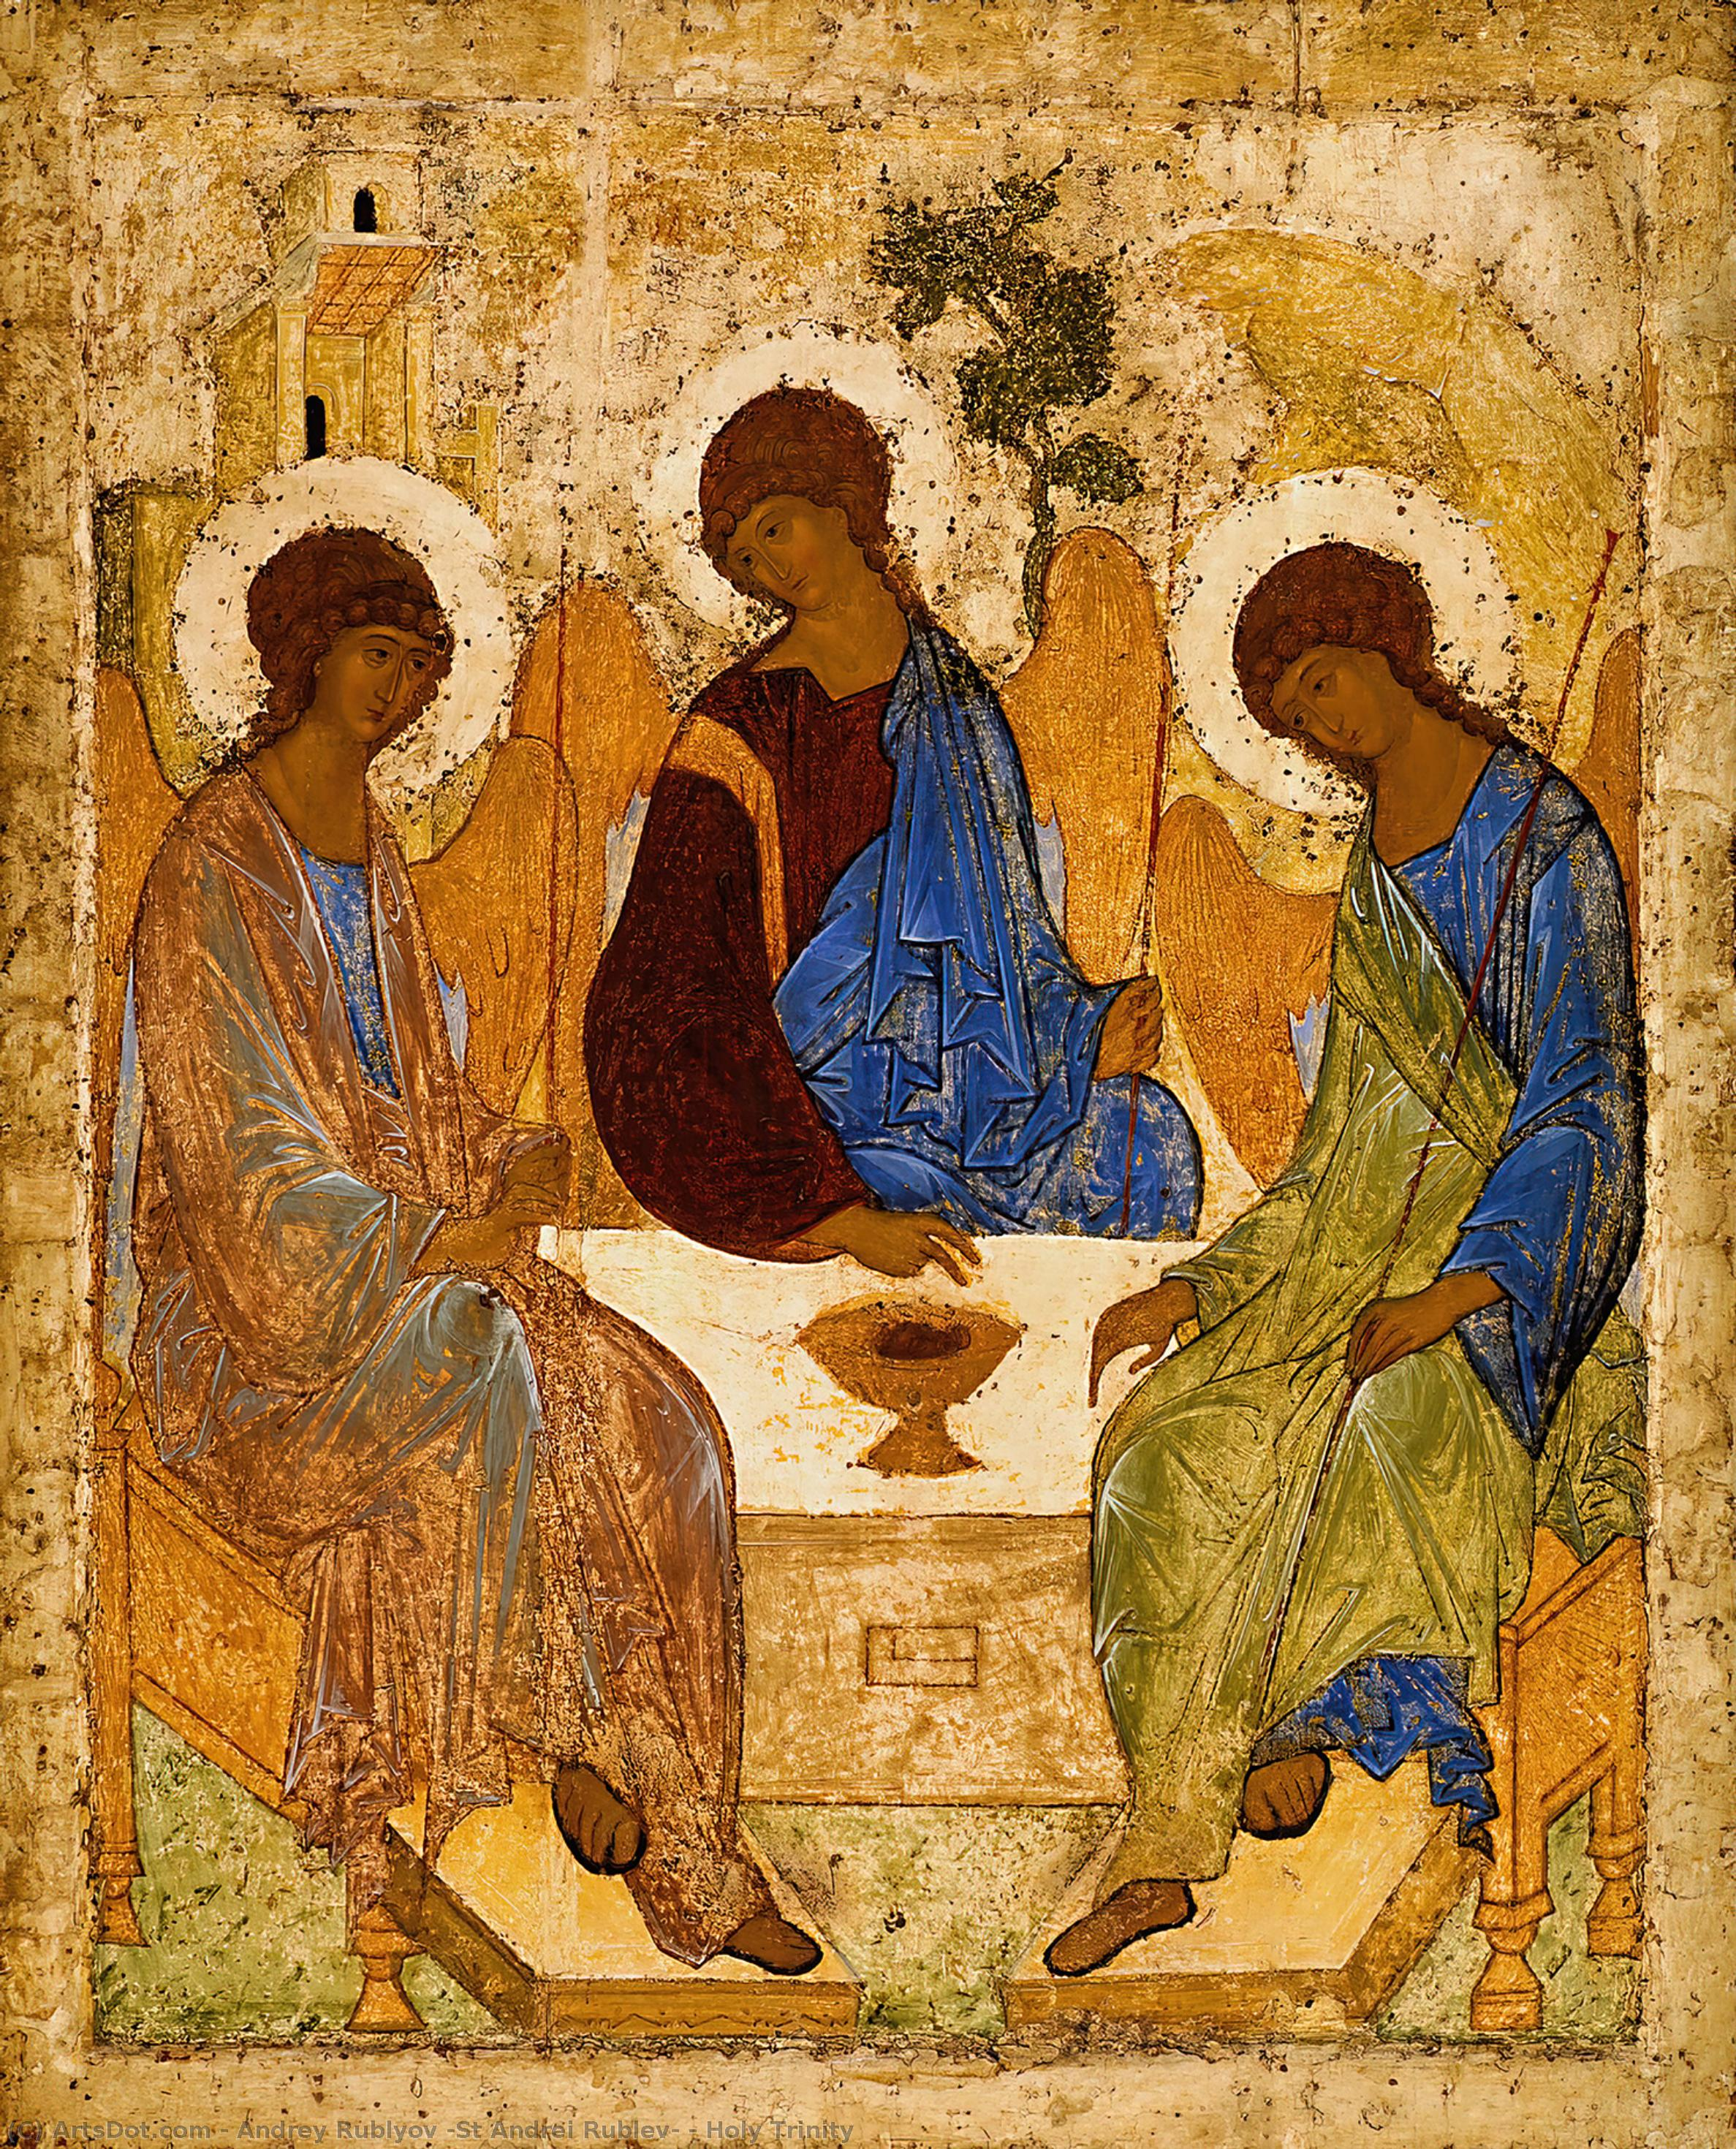 Wikioo.org - The Encyclopedia of Fine Arts - Painting, Artwork by Andrey Rublyov (St Andrei Rublev) - Holy Trinity